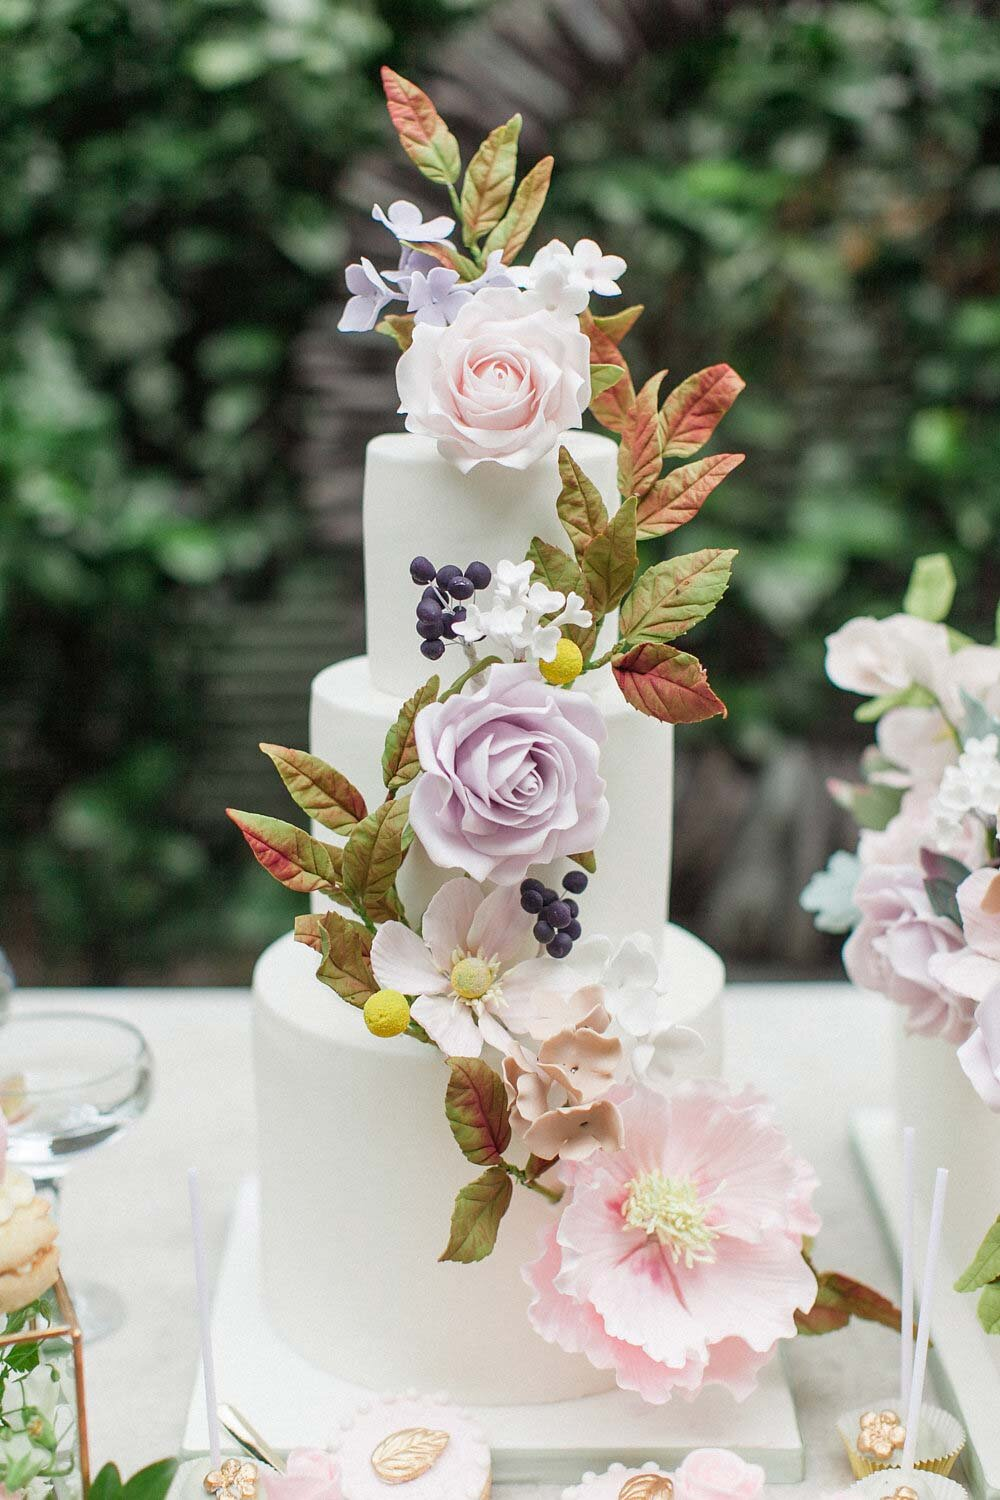 Yes, the lifelike florals are completely edible - amazing artistry!